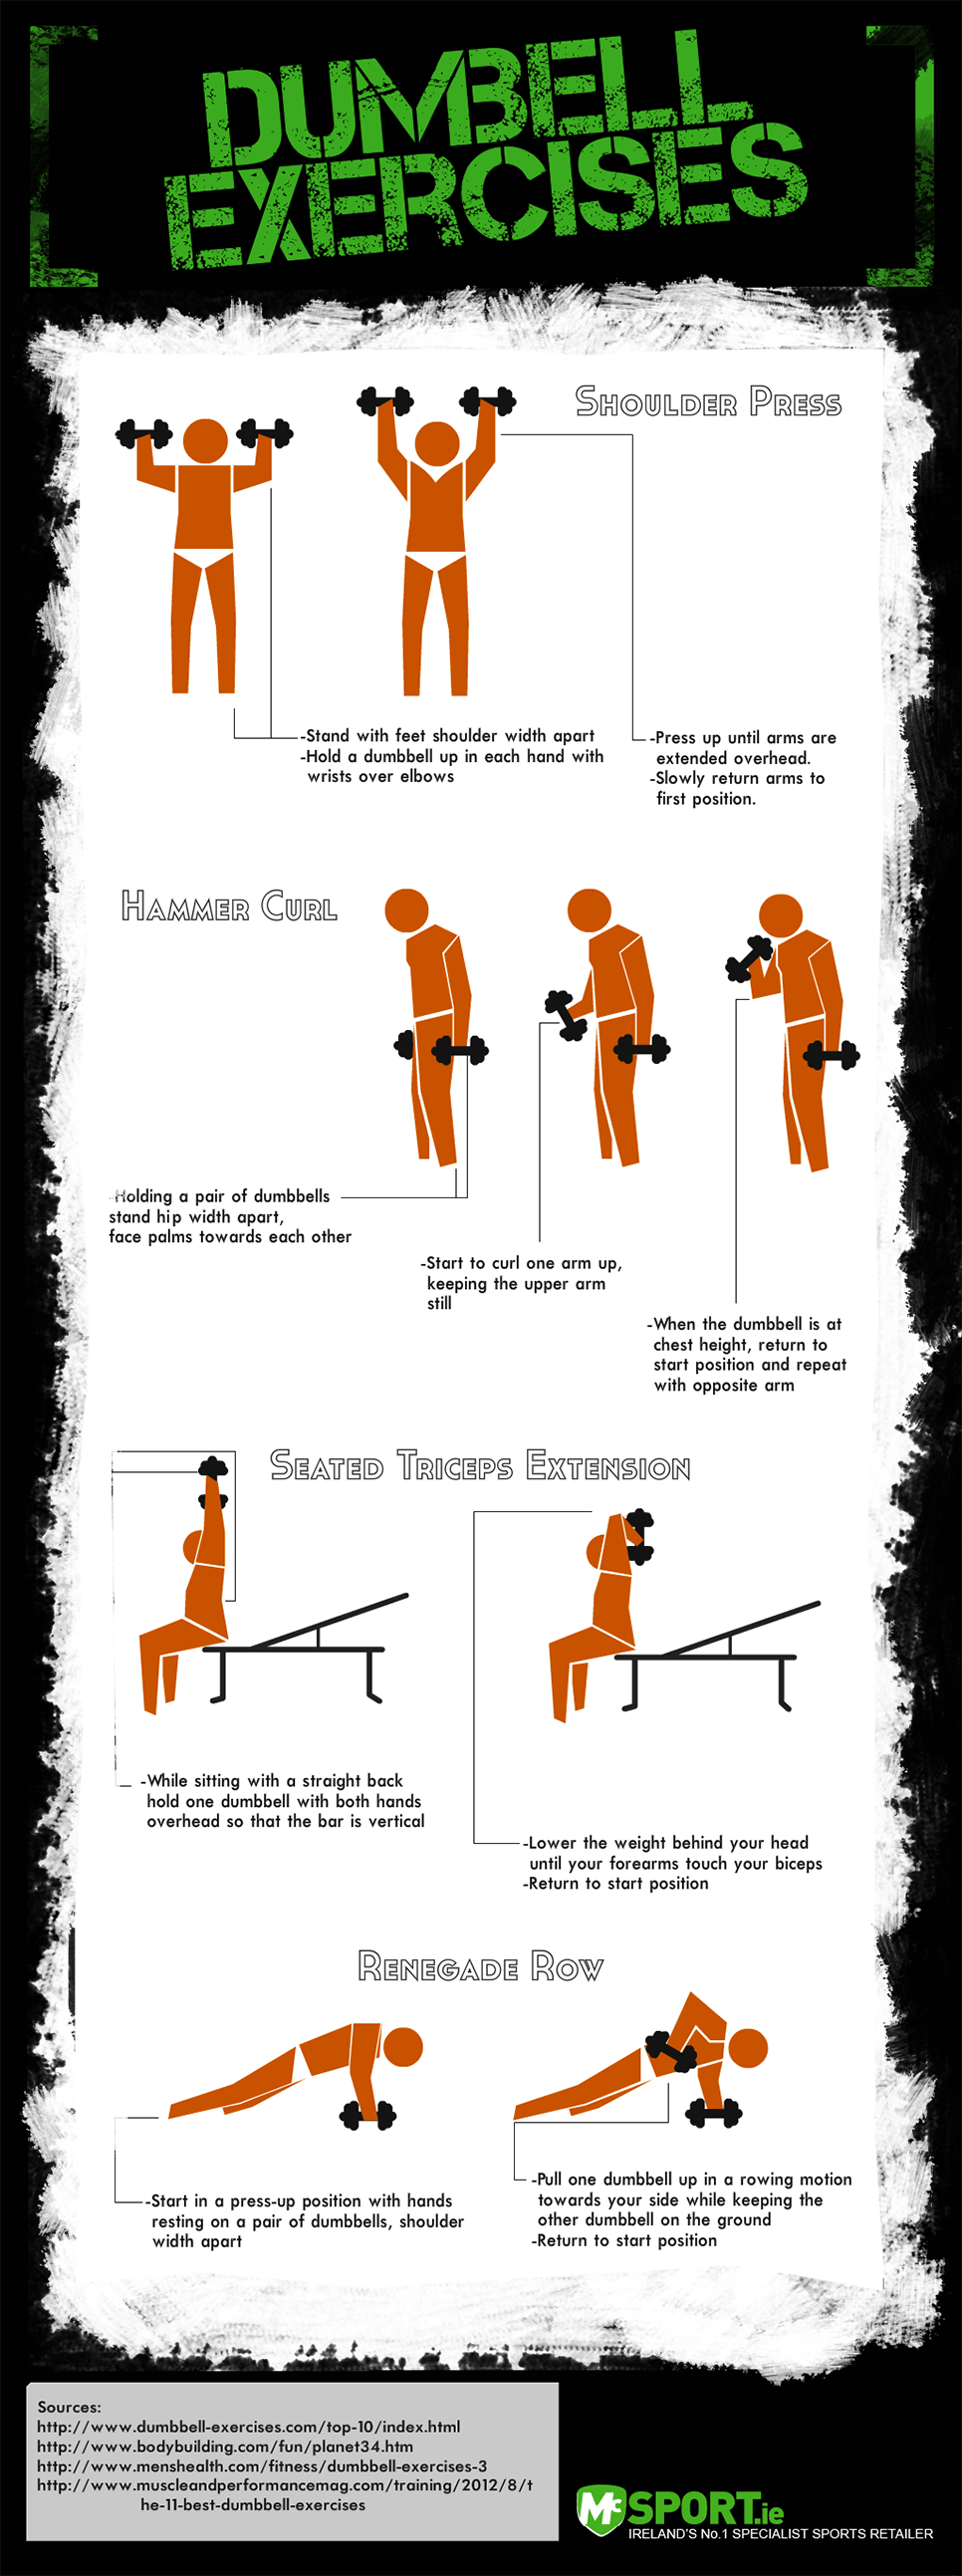 Dumbbell exercises are important and here is why dumbbell exercises infographic nvjuhfo Choice Image